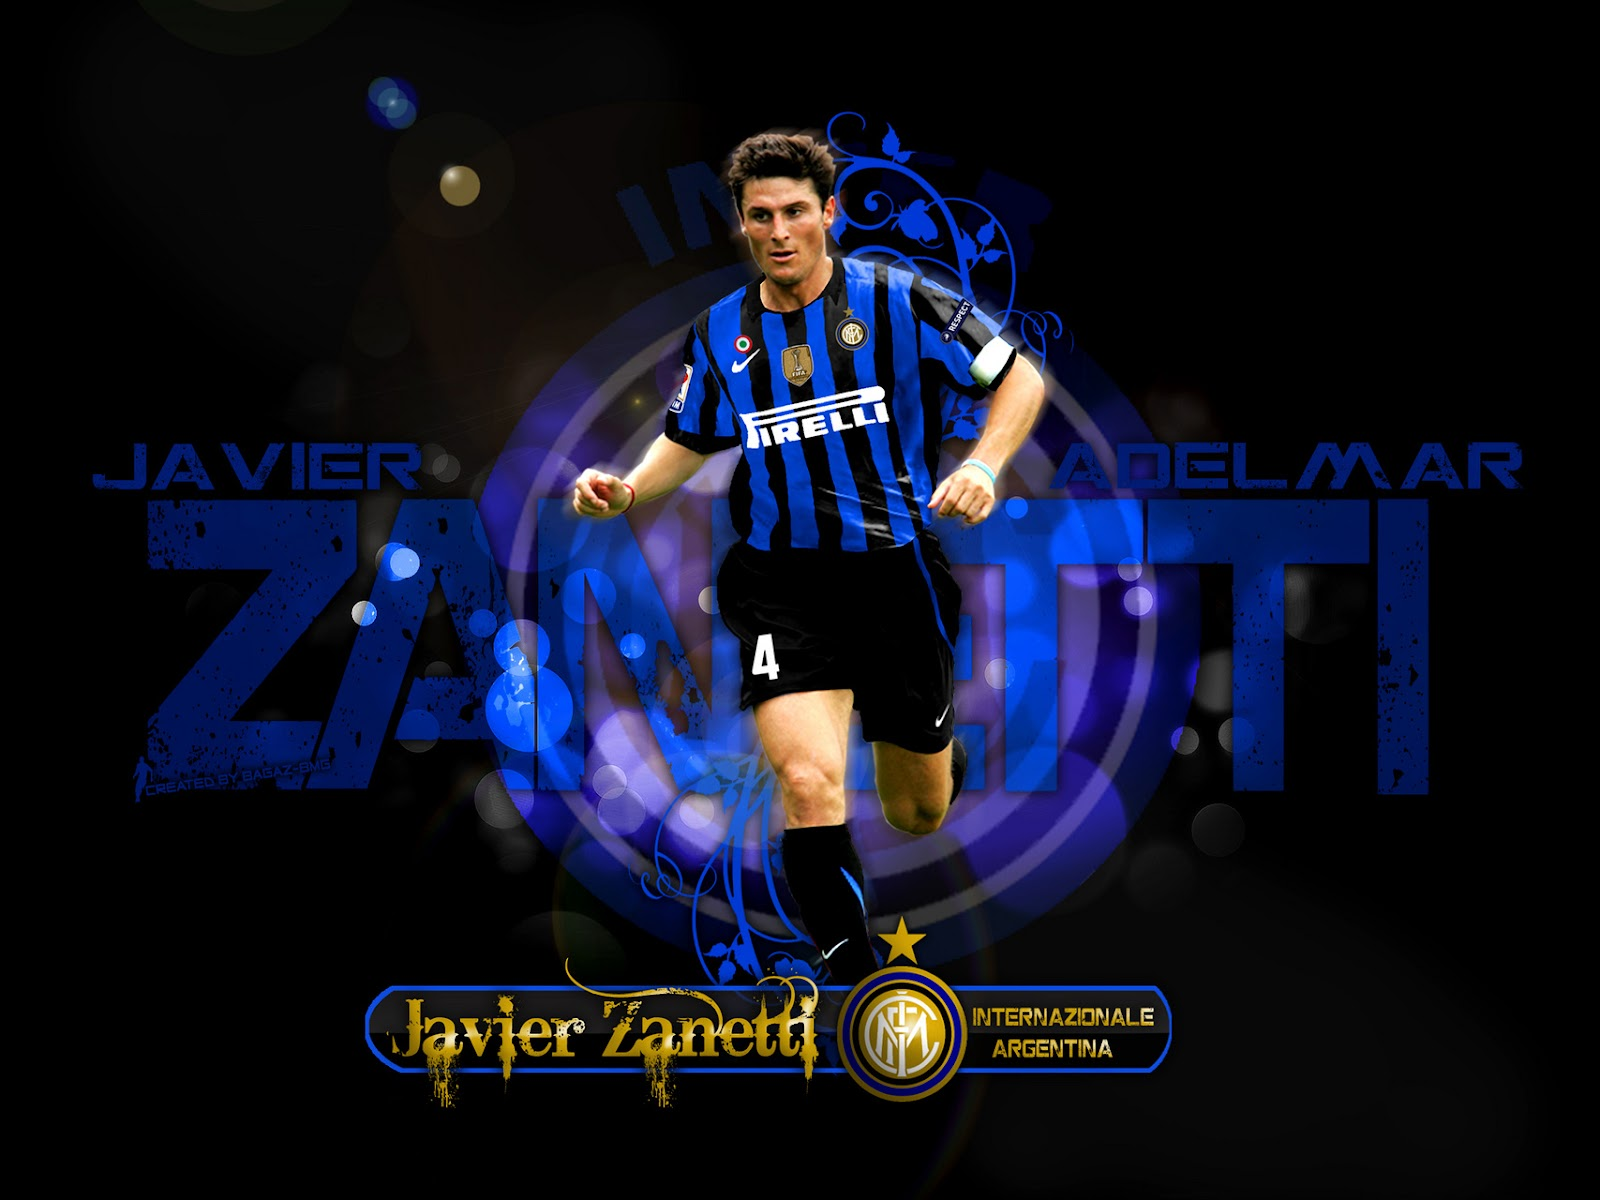 inter milan wallpaper 2012 - photo #17